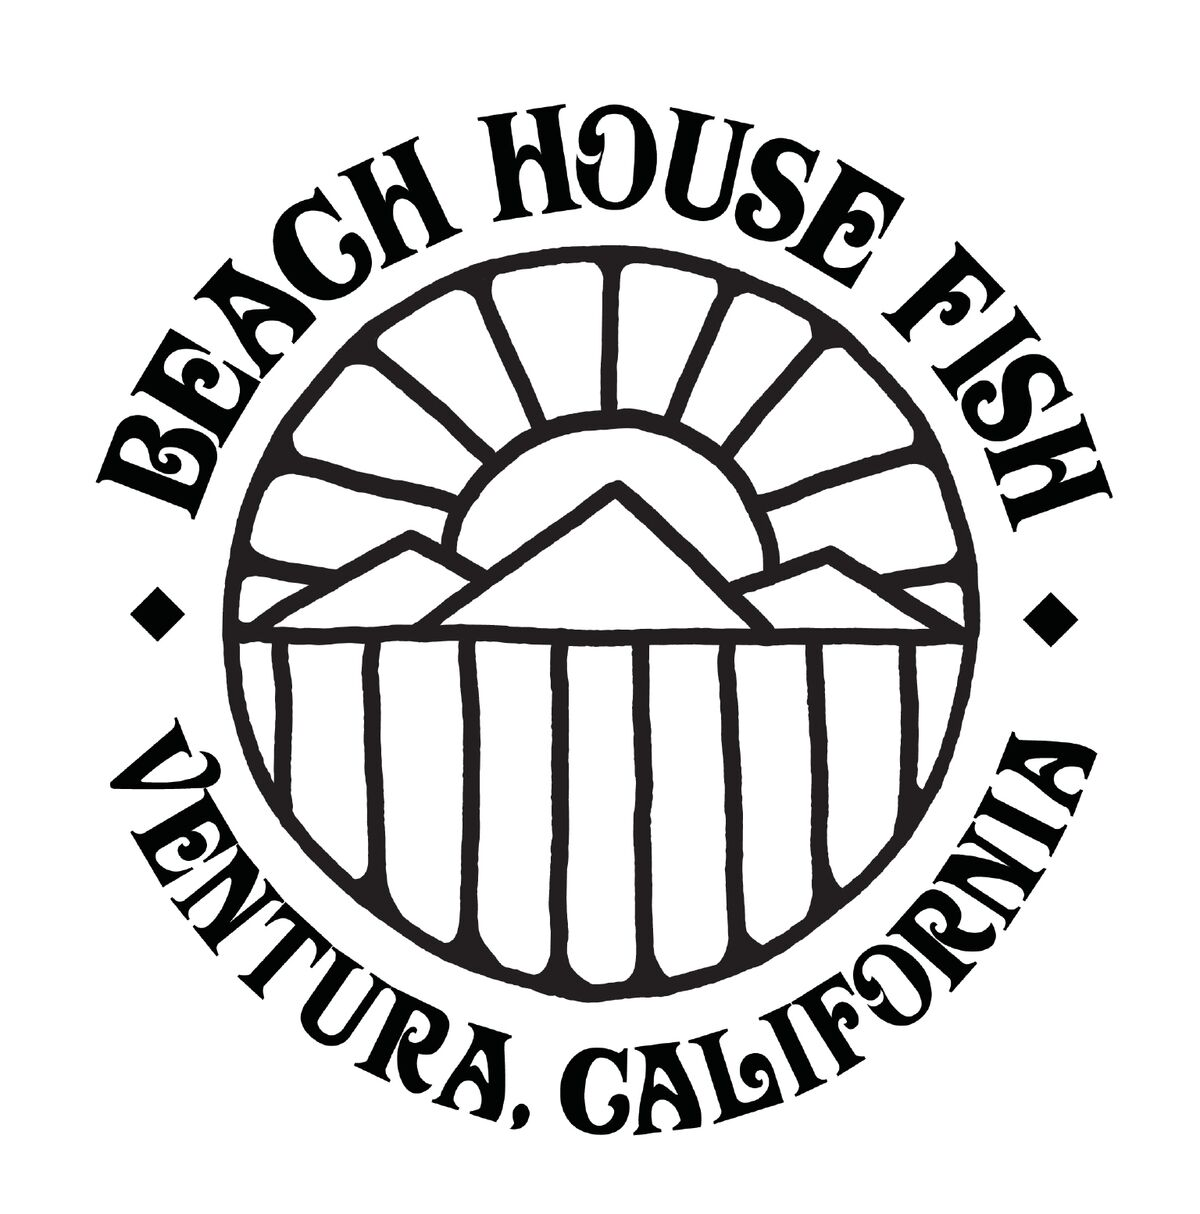 Beach House Fish